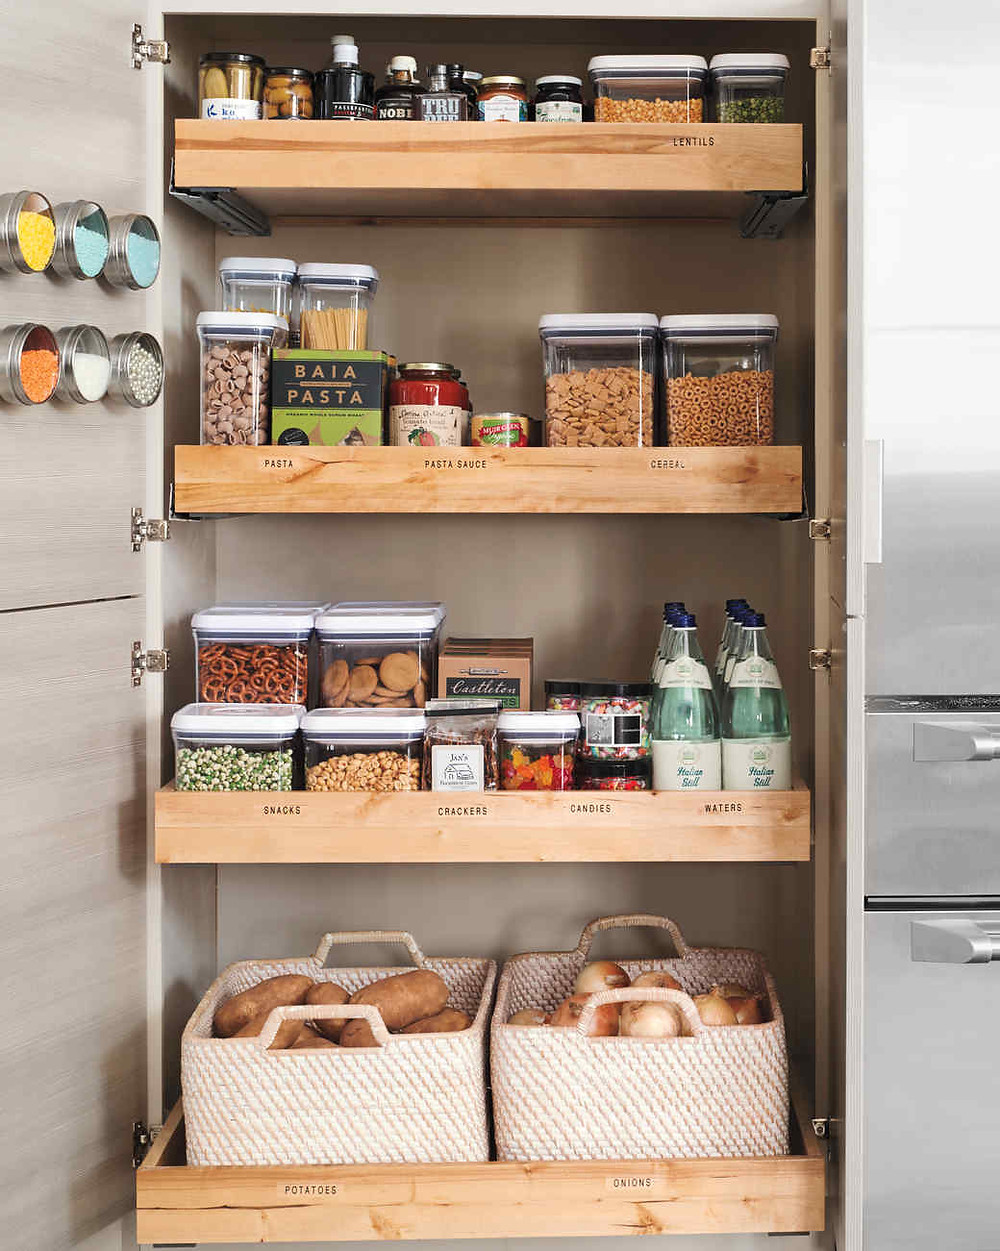 Keep your kitchen clean and organized